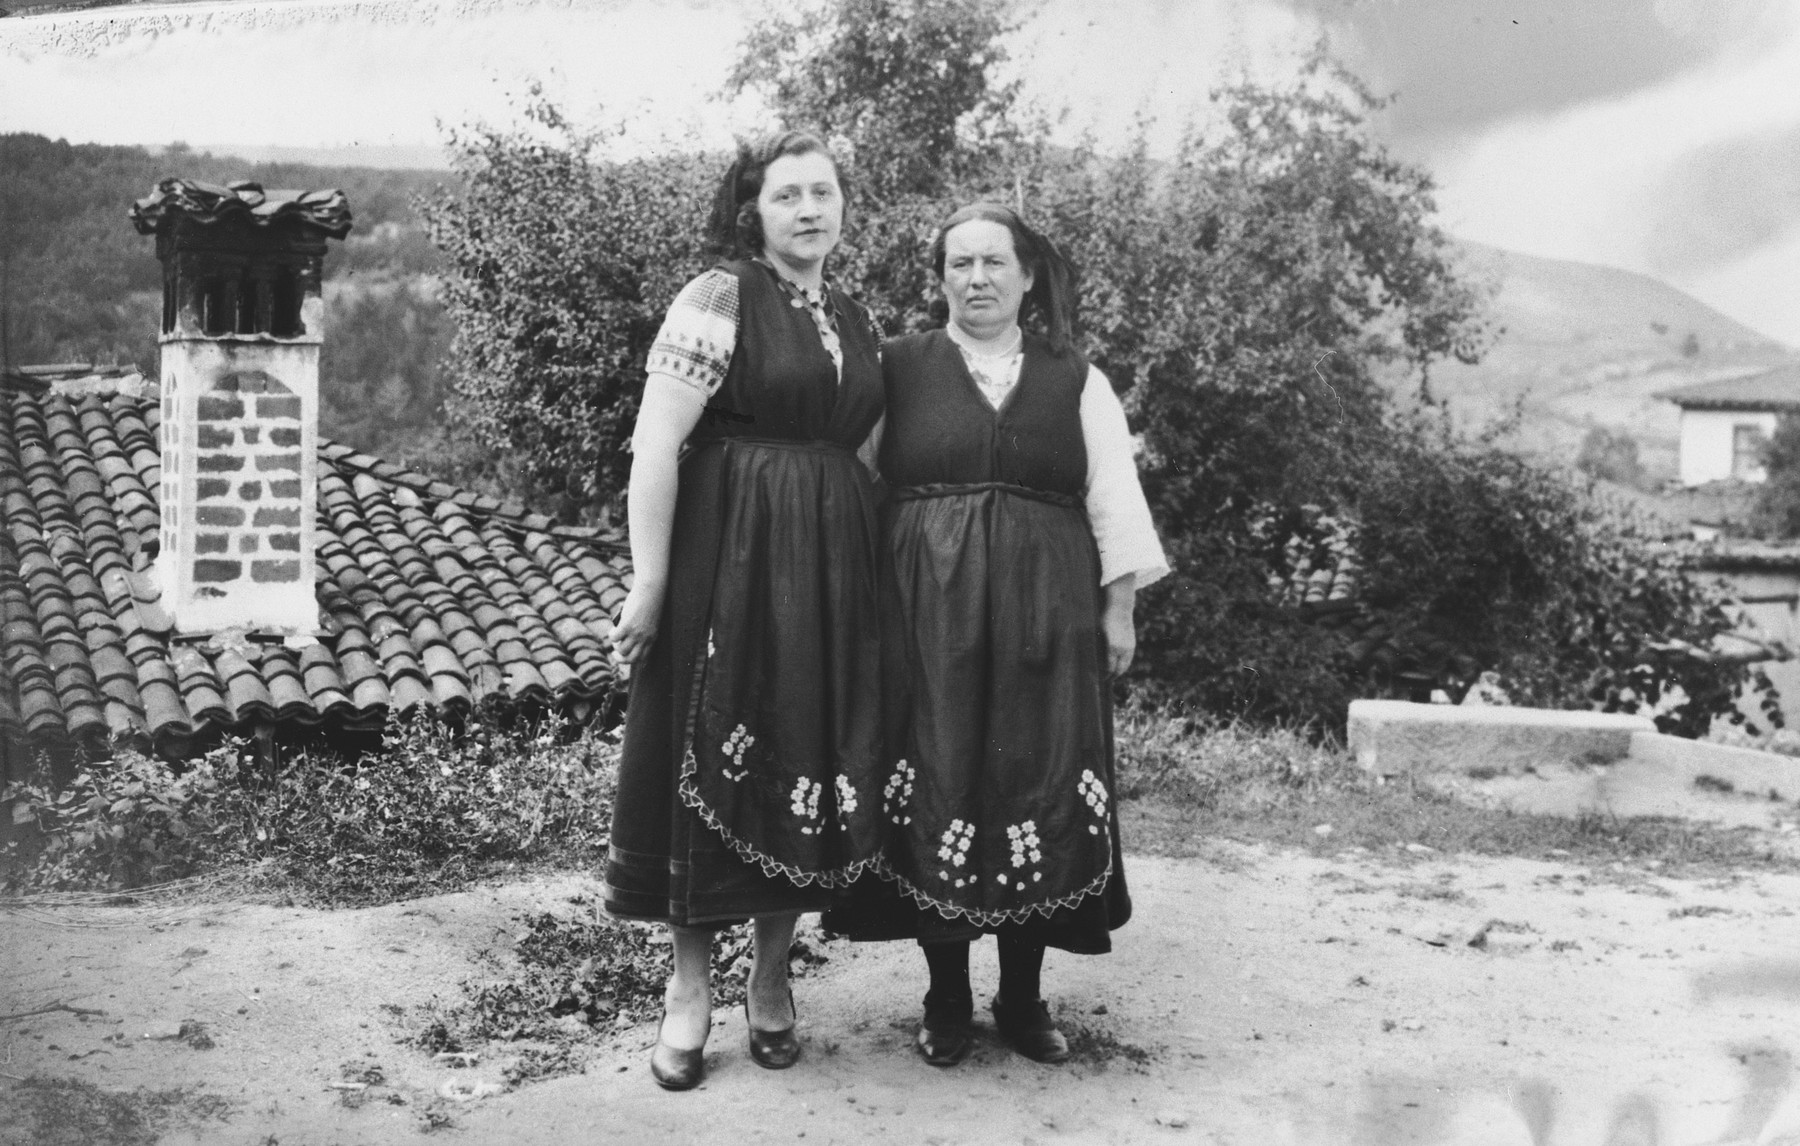 Gisela Tchitchekik (left) and a village woman pose together in matching traditional costumes in the village where Gisela and her sons are spending their summer vacation.